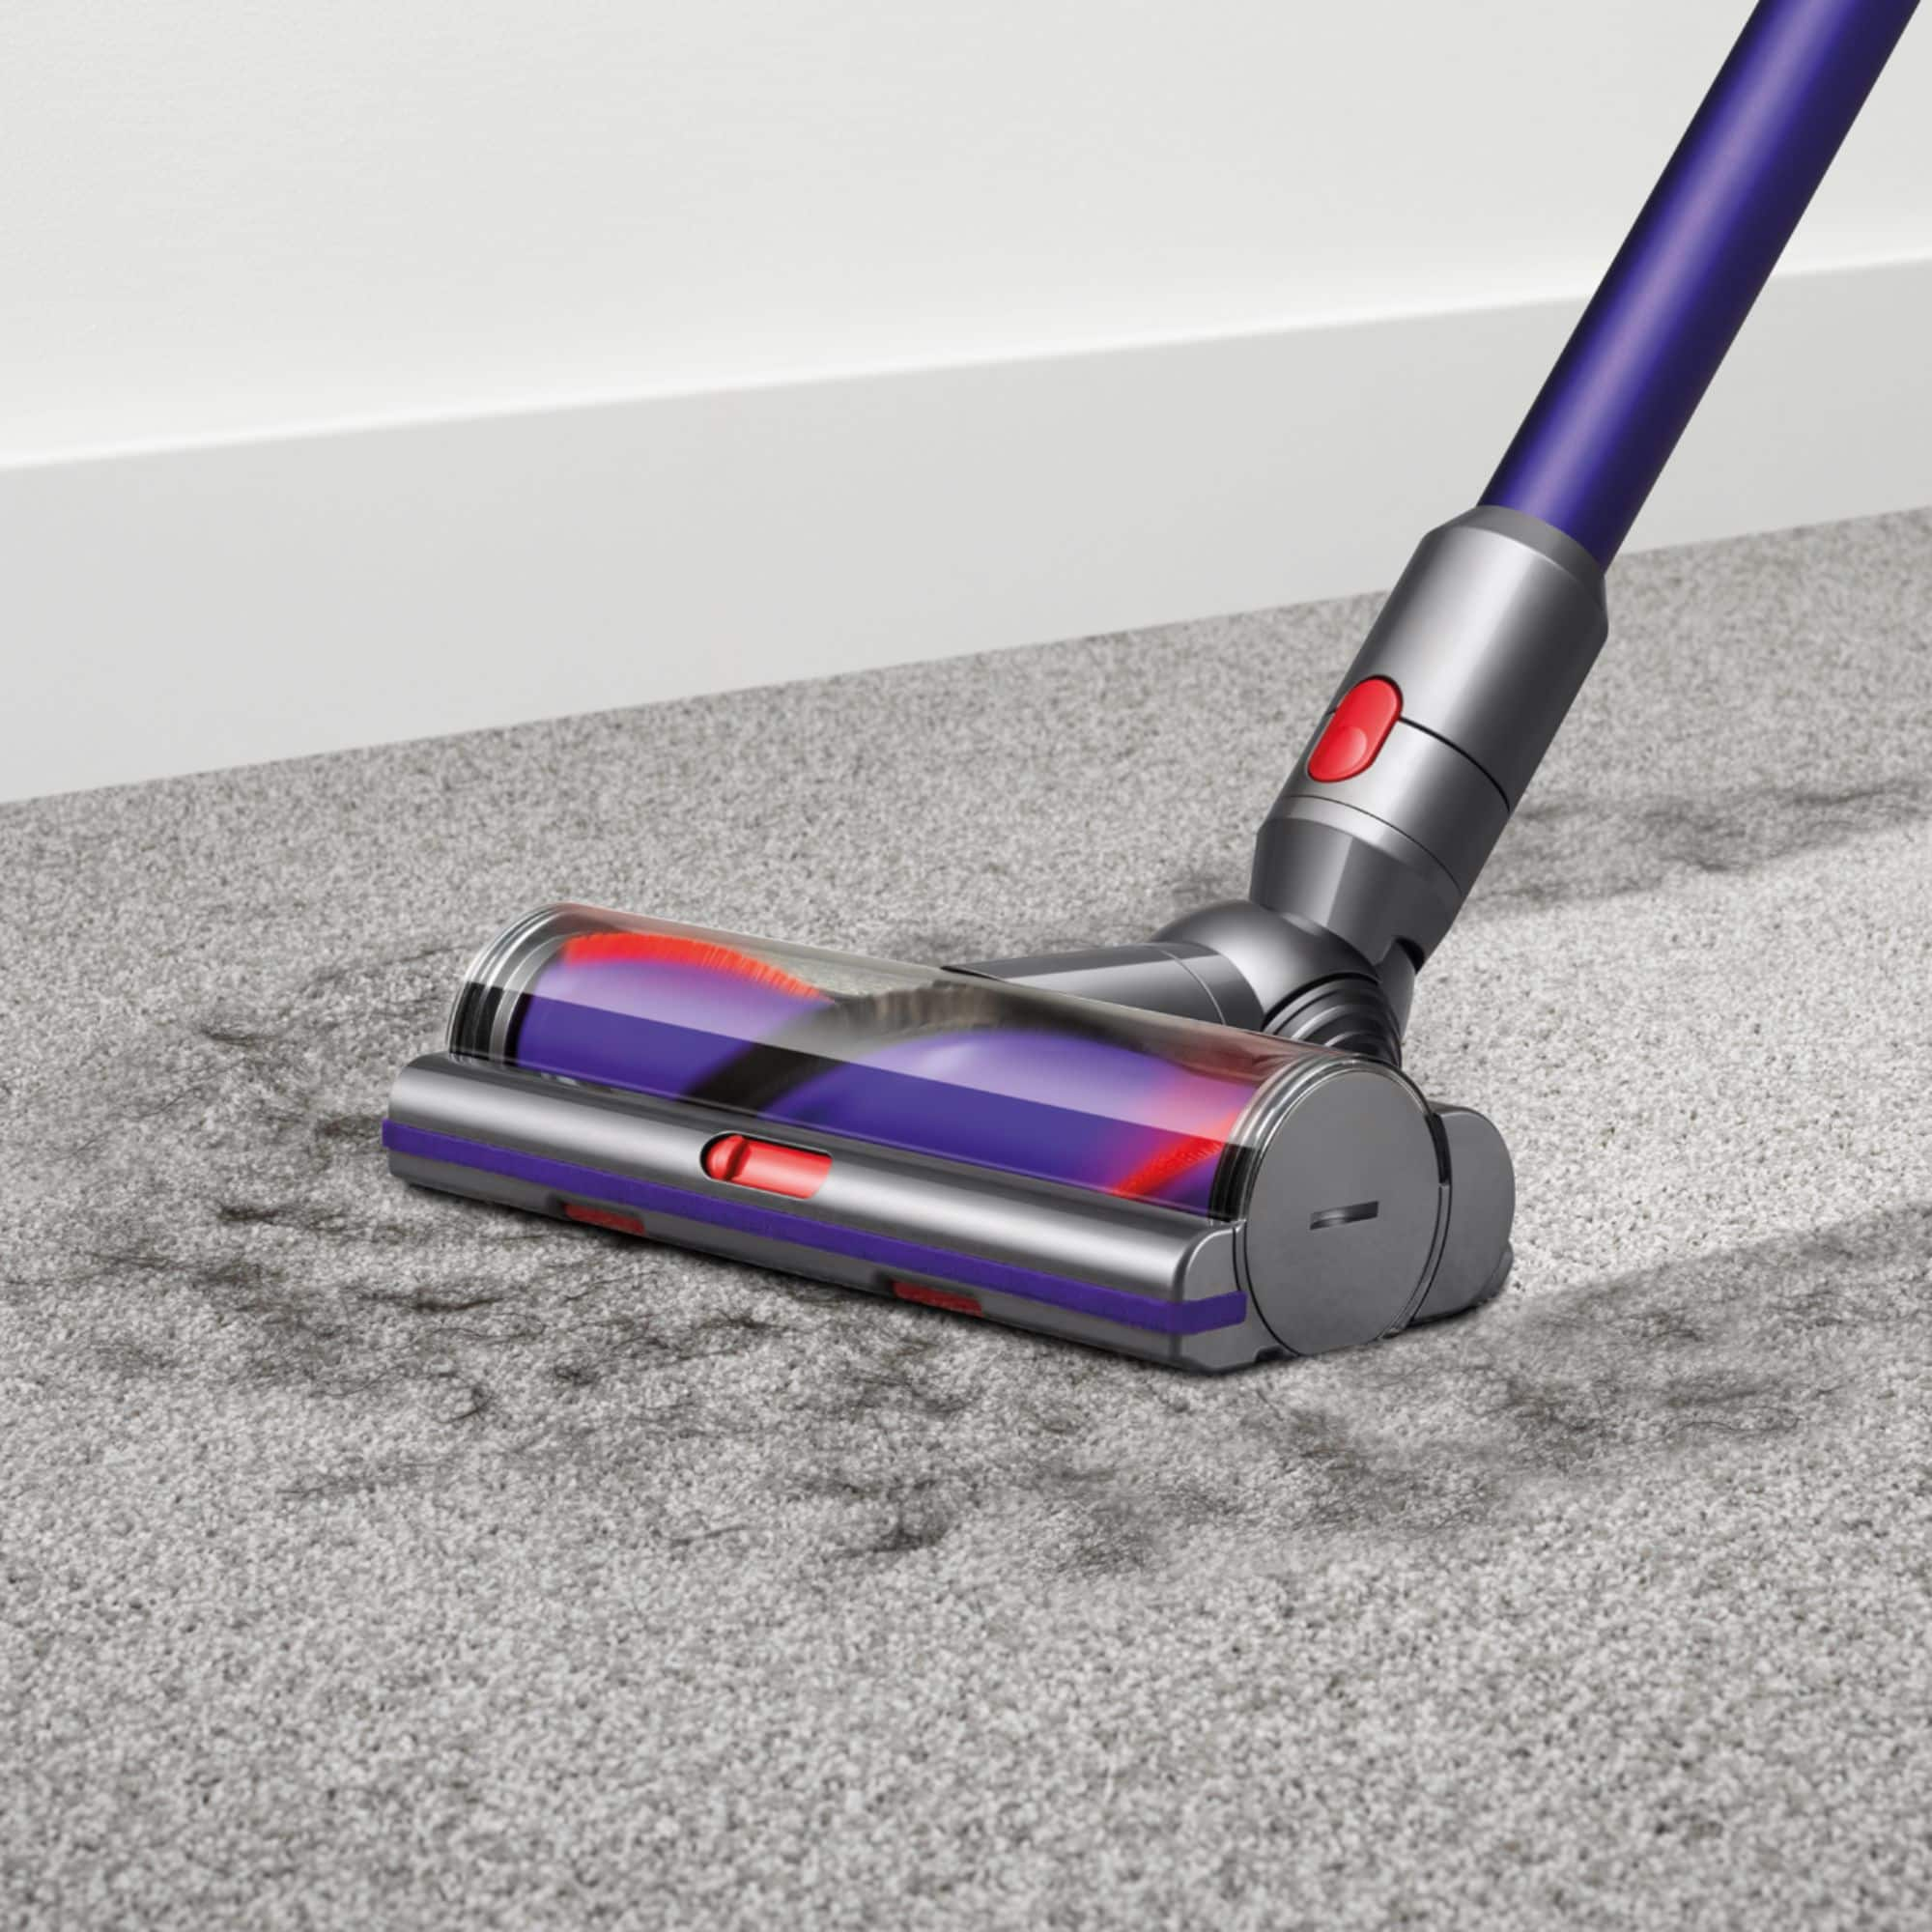 Best Buy: Dyson - Cyclone V10 Animal Cord-Free Stick Vacuum - Purple for $349.99